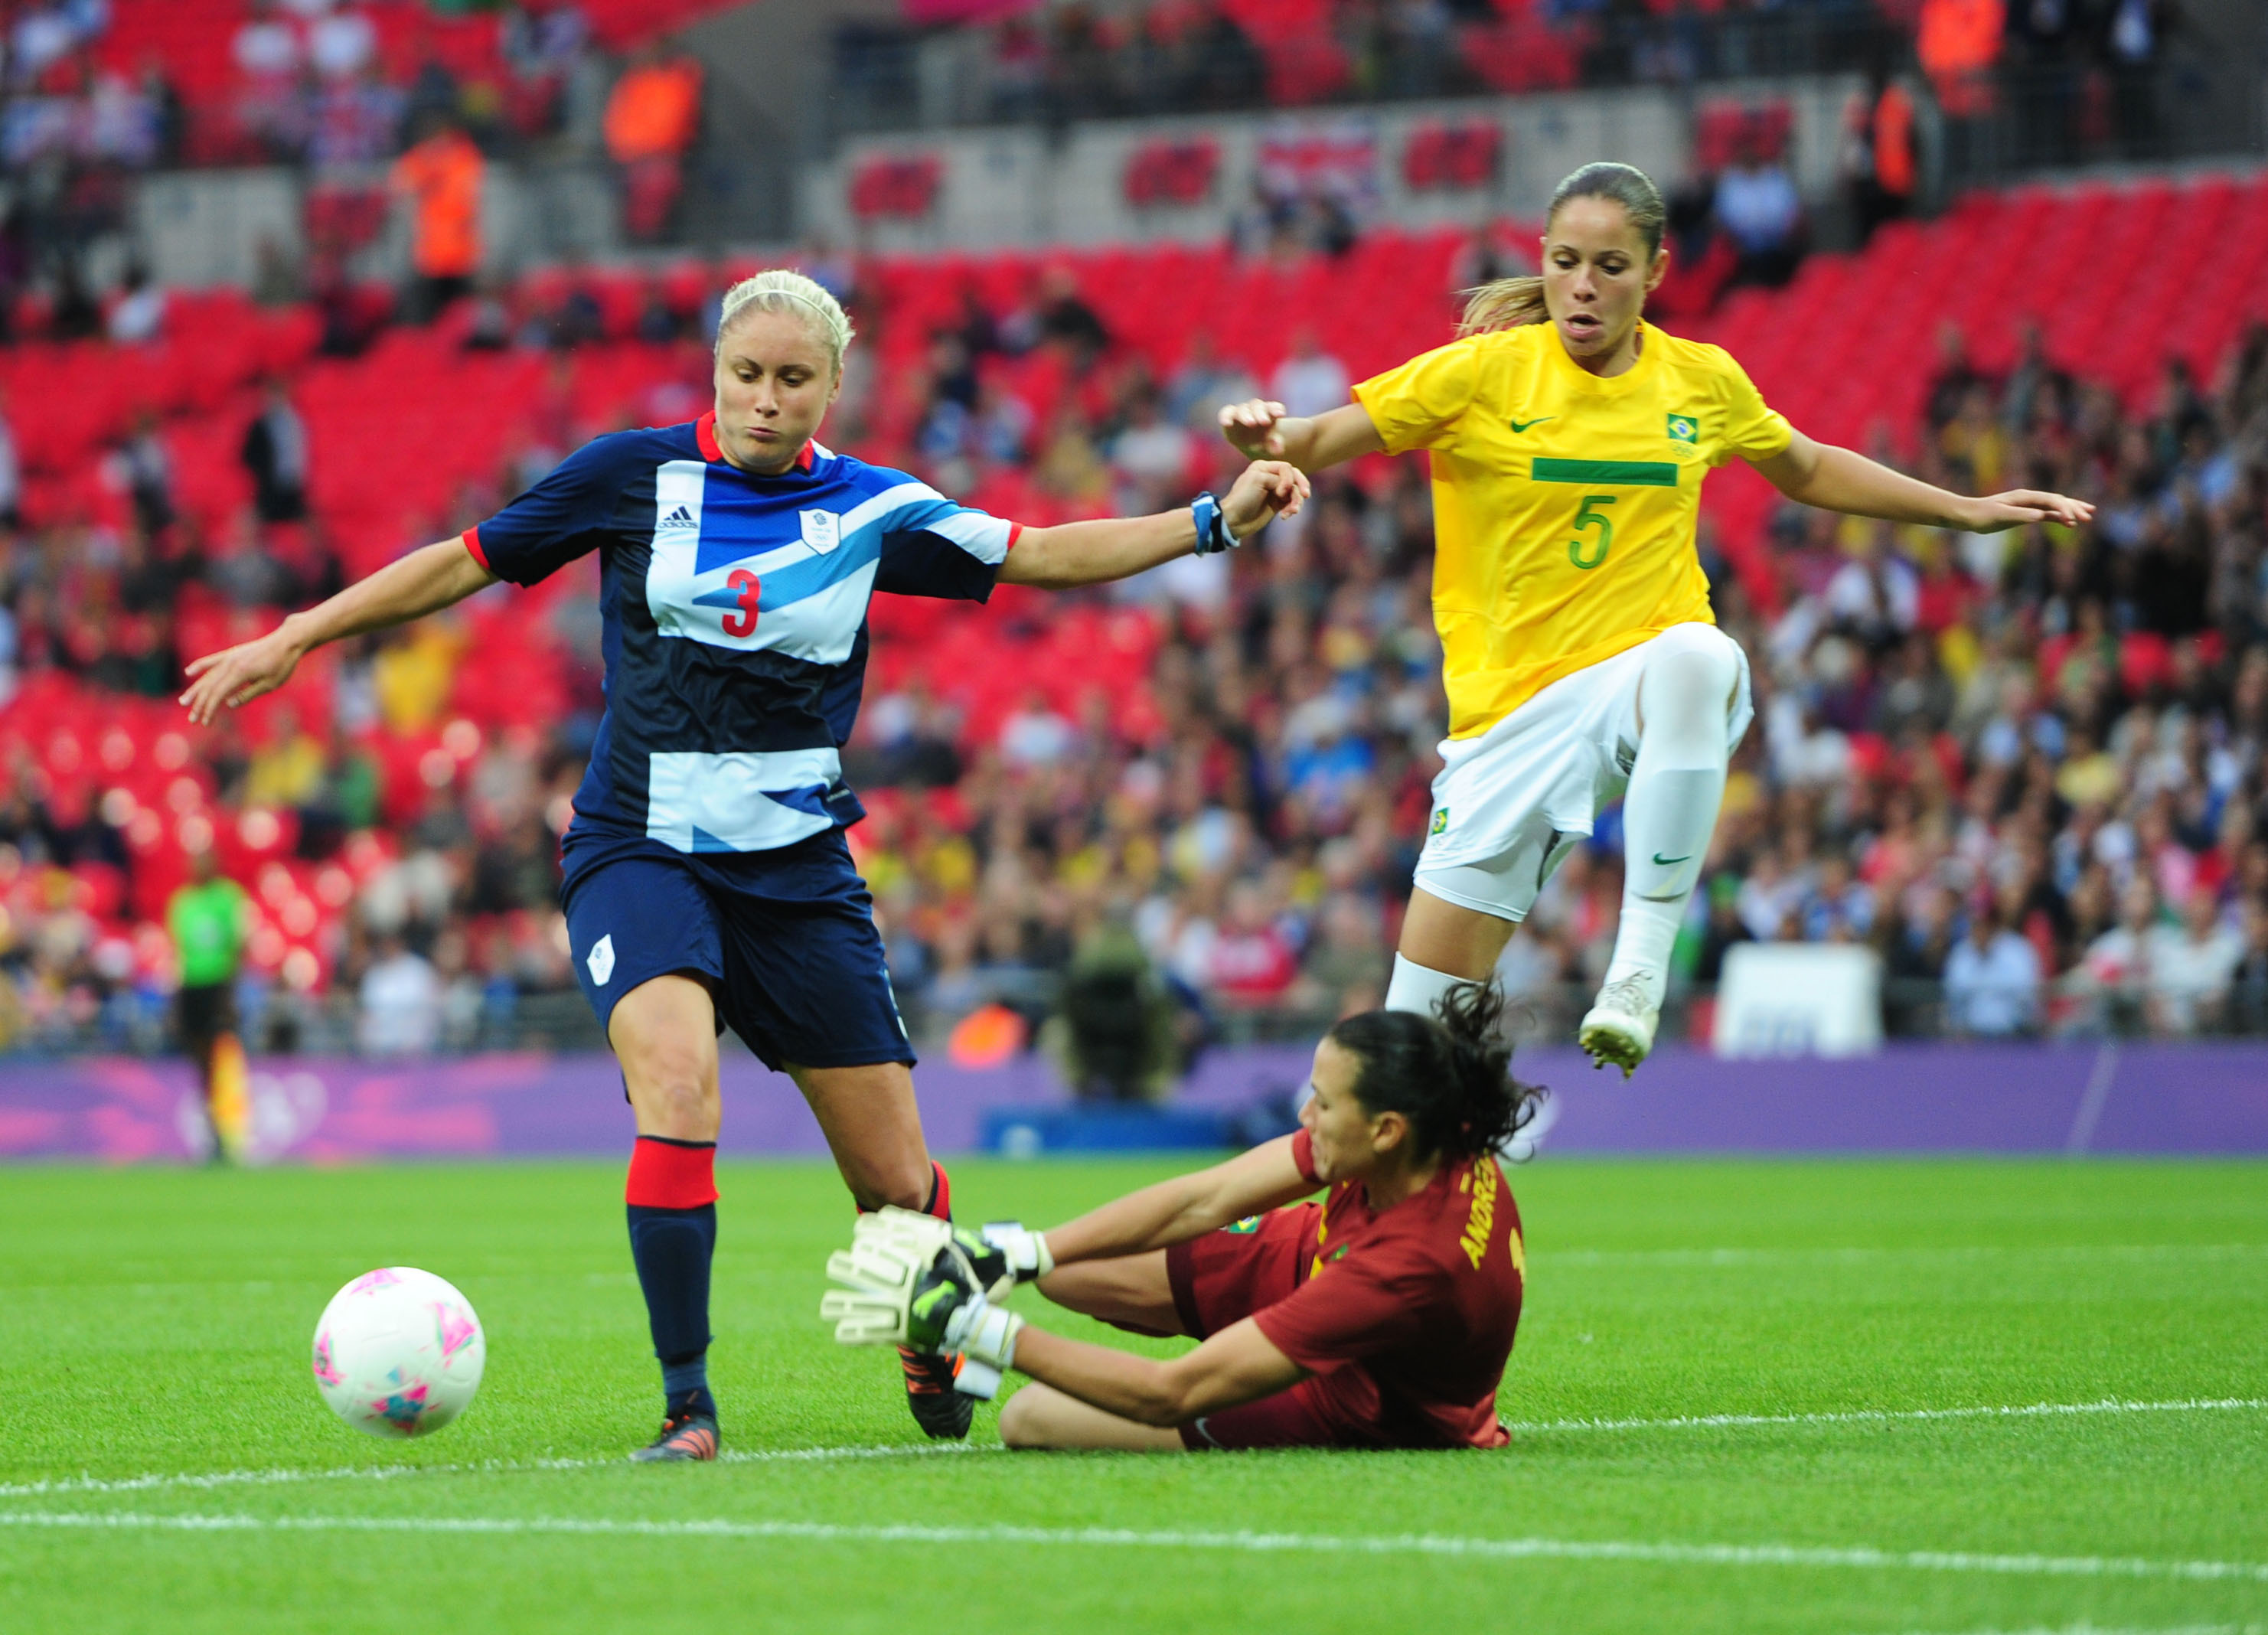 Team GB's Steph Houghton scores against Brazil at the 2012 London Olympics